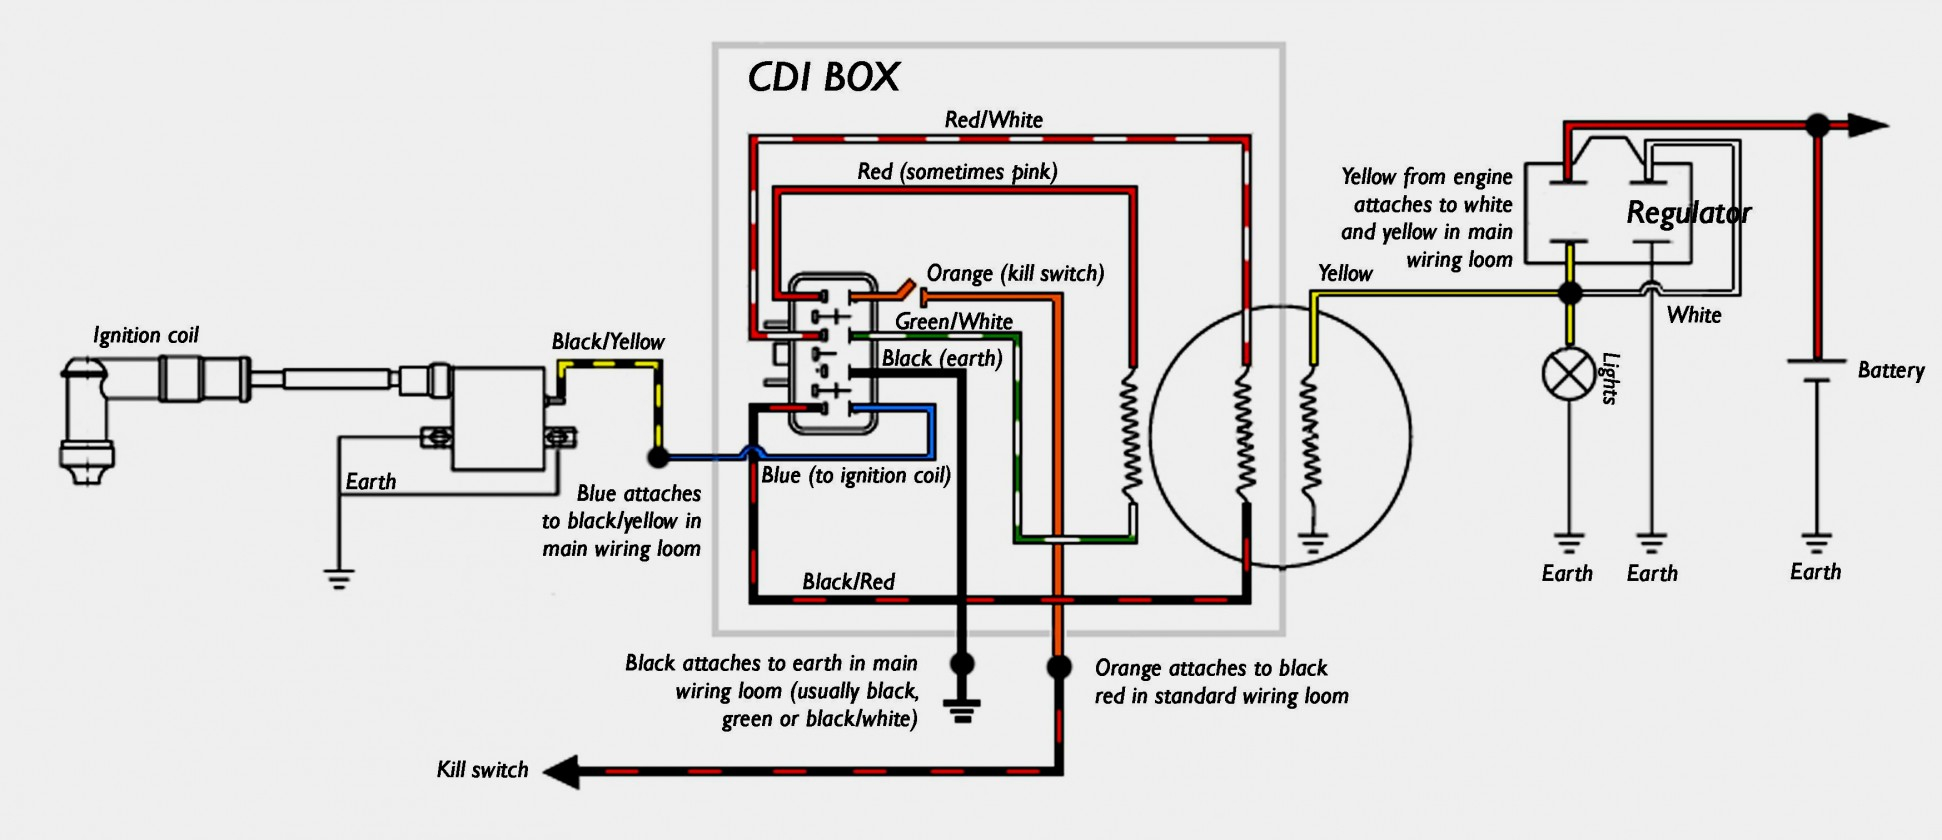 Fabulous Cdi Box Wiring Diagram For Ac Wiring Diagram Wiring Cloud Hisonuggs Outletorg